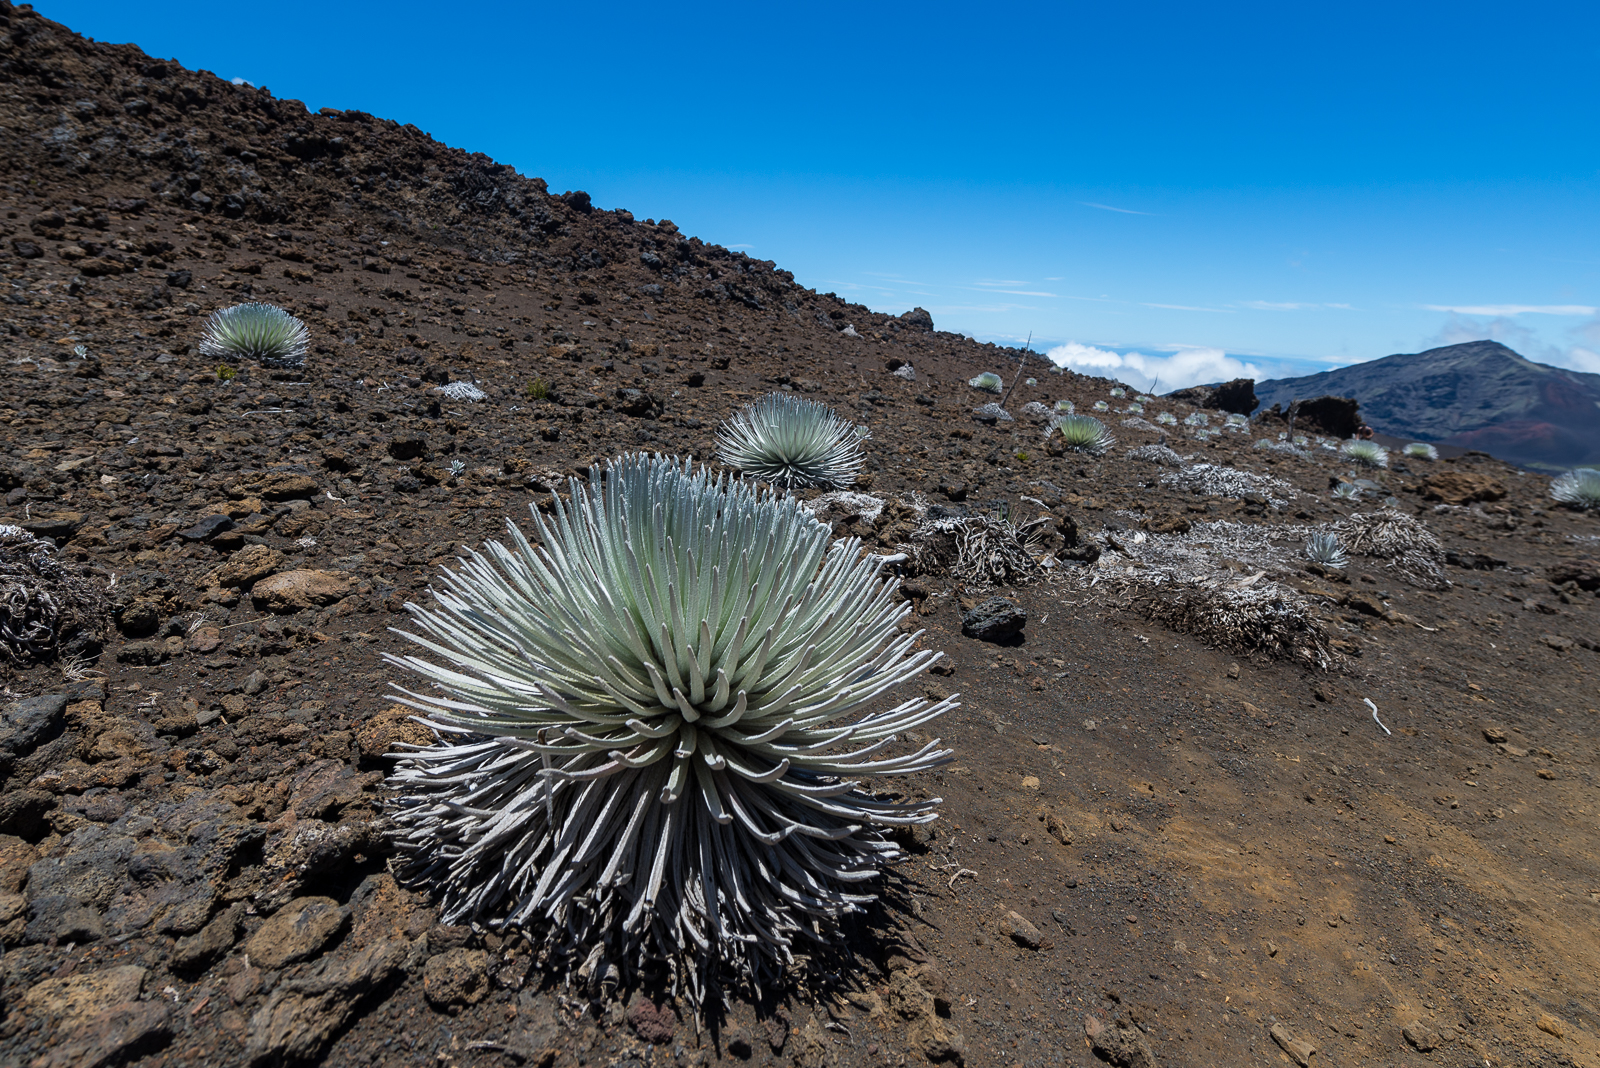 A silversword species endemic to the slopes of Haleakalā volcano.